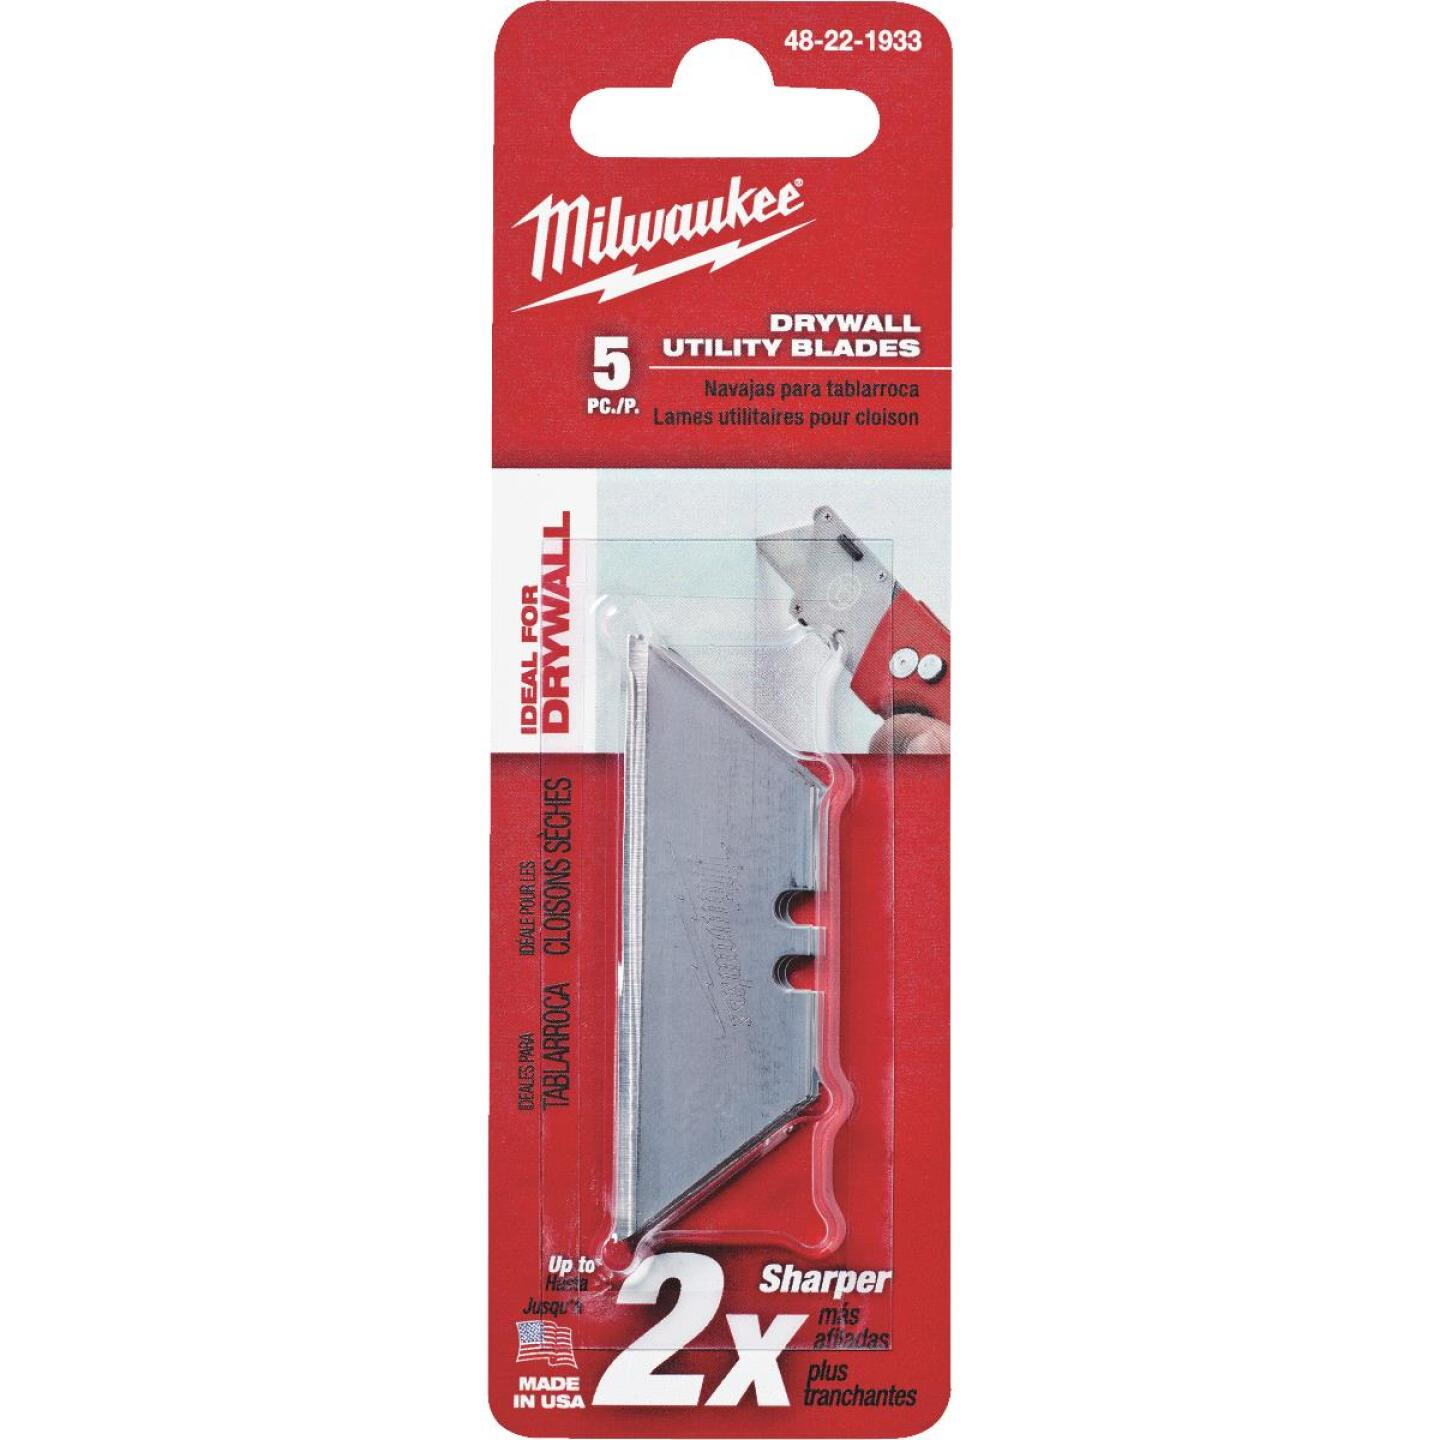 Milwaukee Drywall 2-Point 2-3/8 In. Utility Knife Blade (5-Pack) Image 1